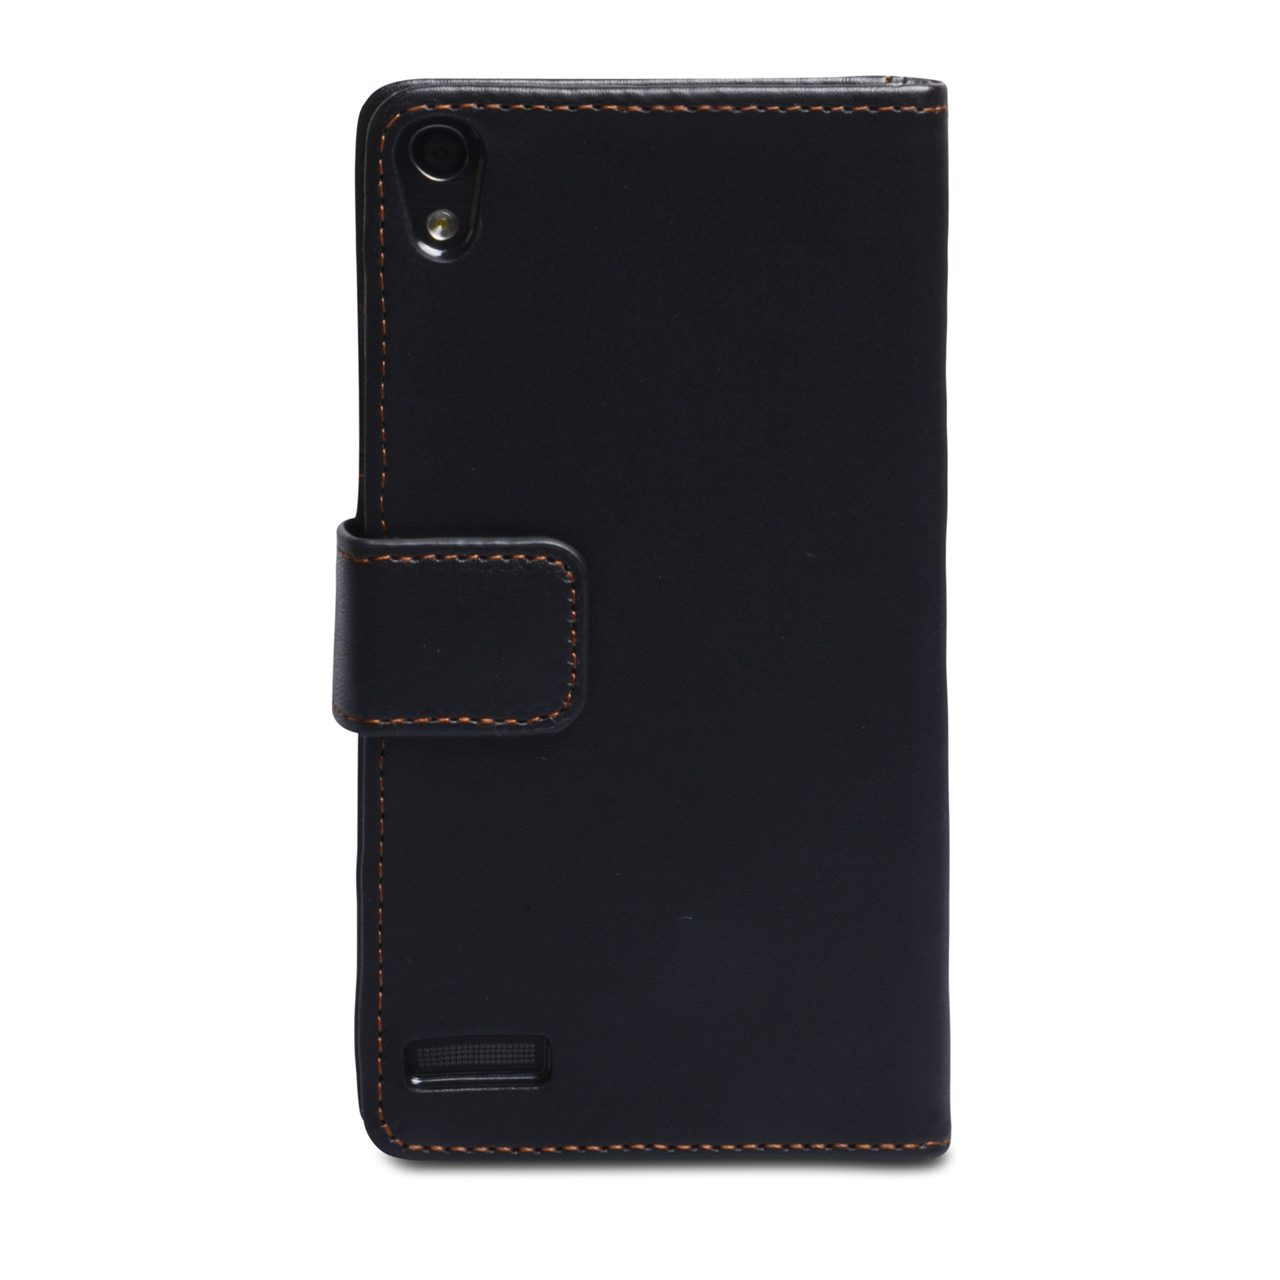 YouSave Huawei Ascend P6 Leather-Effect Wallet Case - Black